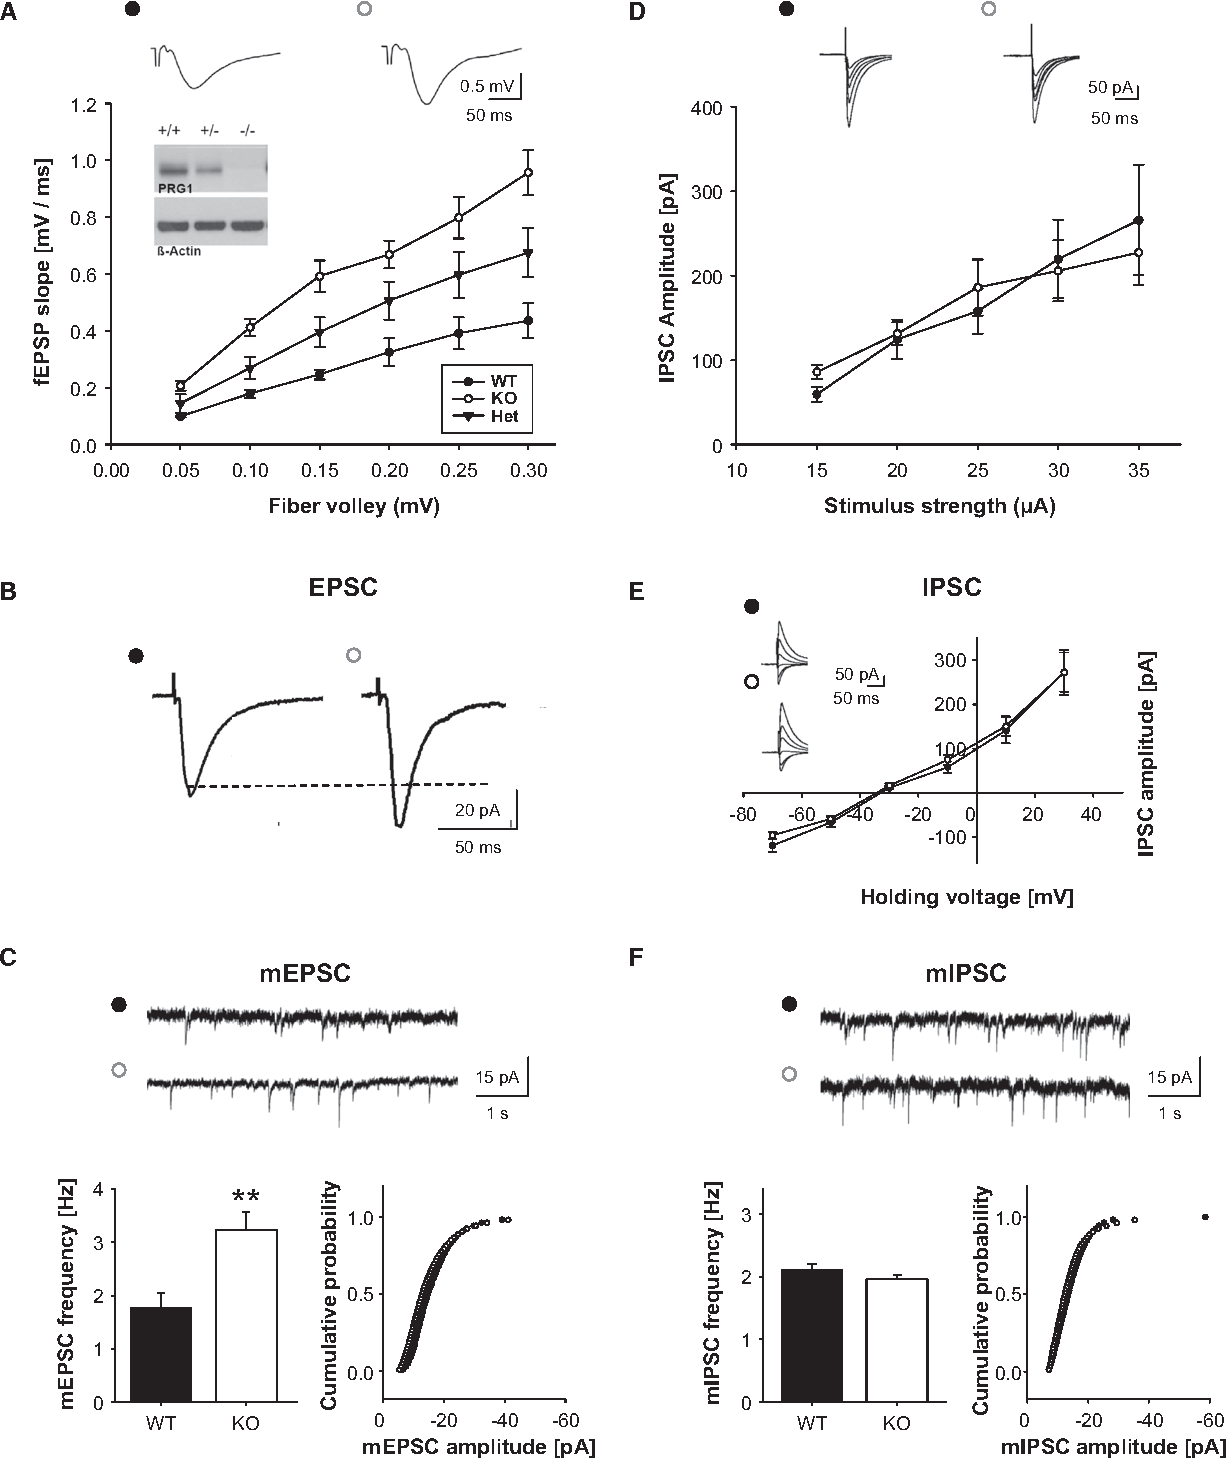 Figure 4. Hyperexcitability in CA1 Neurons in PRG-1 KO Mice